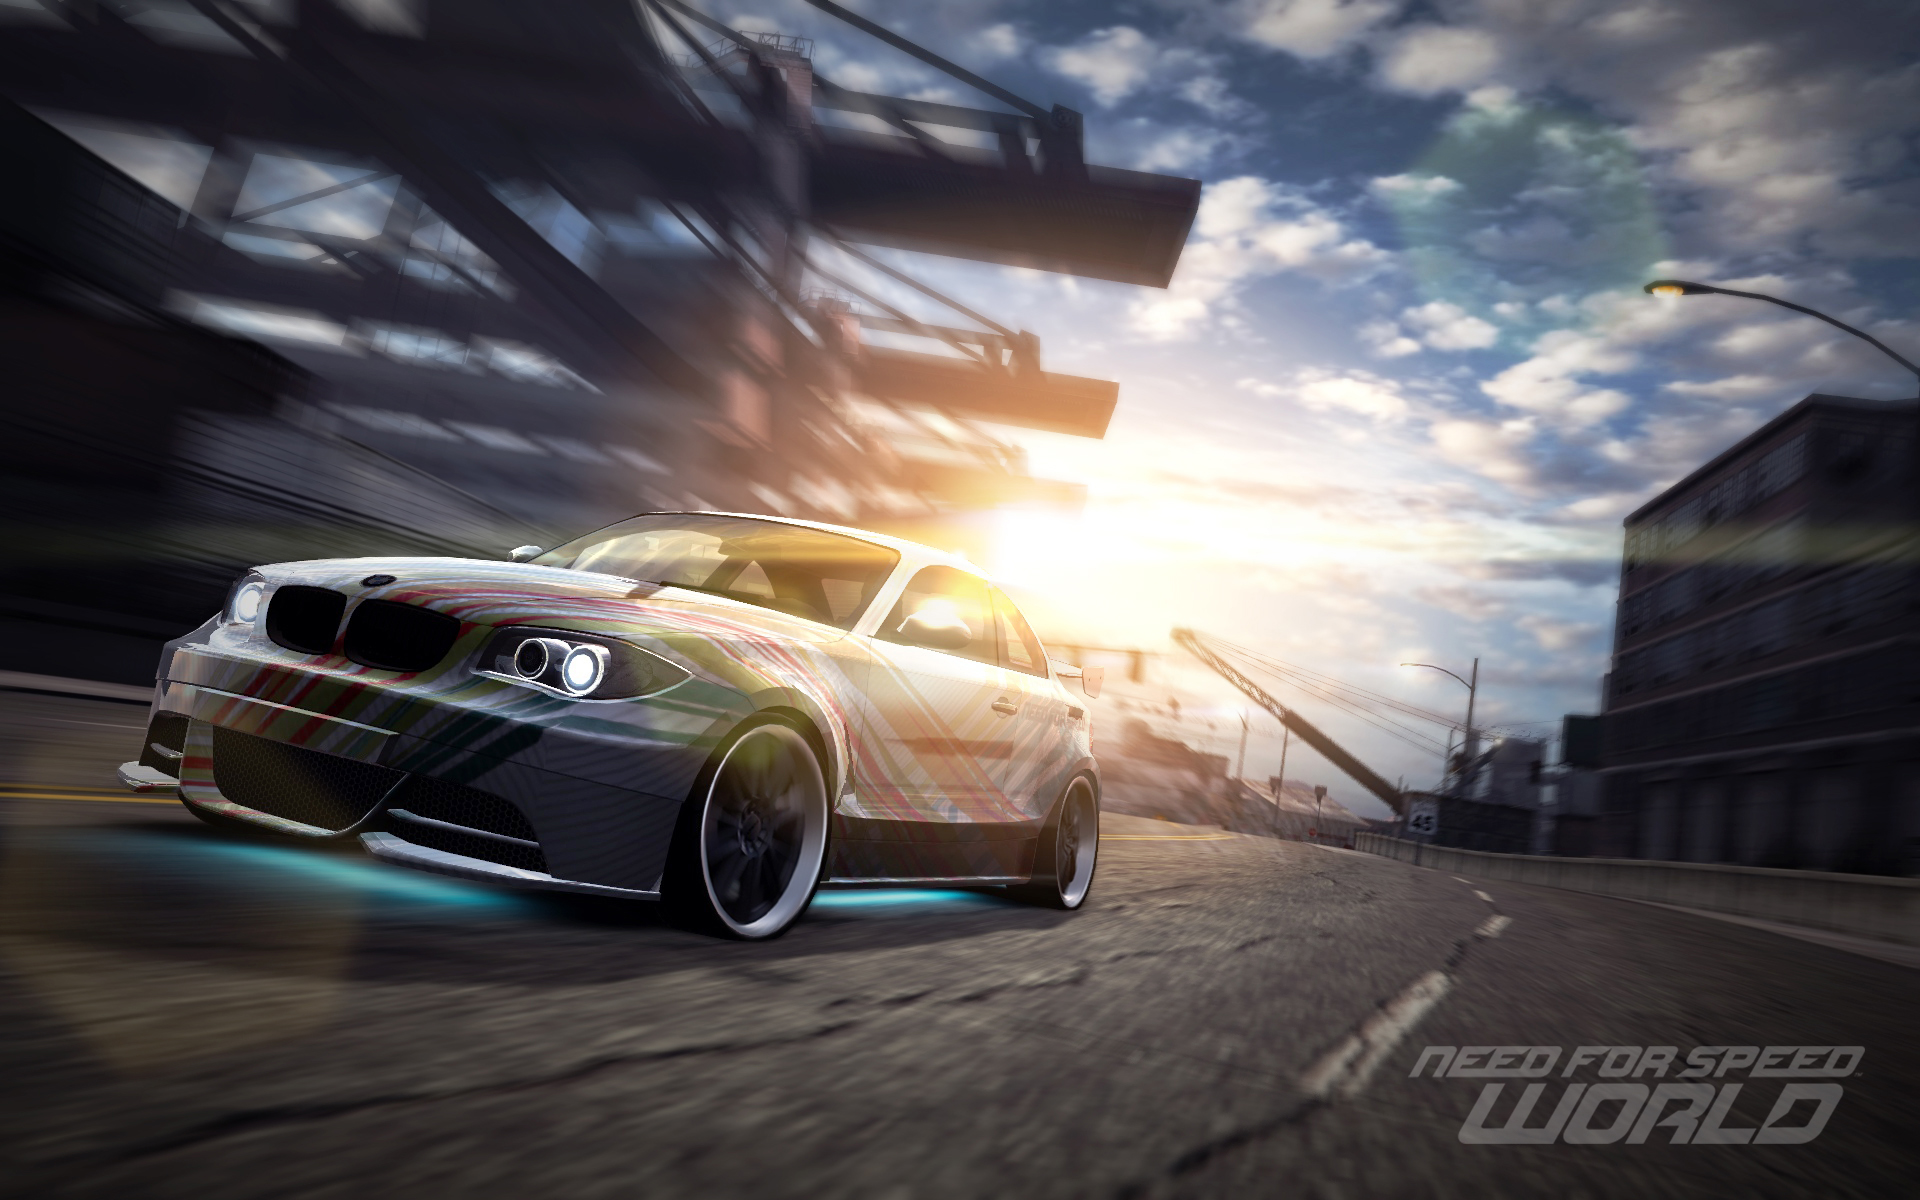 BMW 135i Coupe | NFS World Wiki | FANDOM powered by Wikia